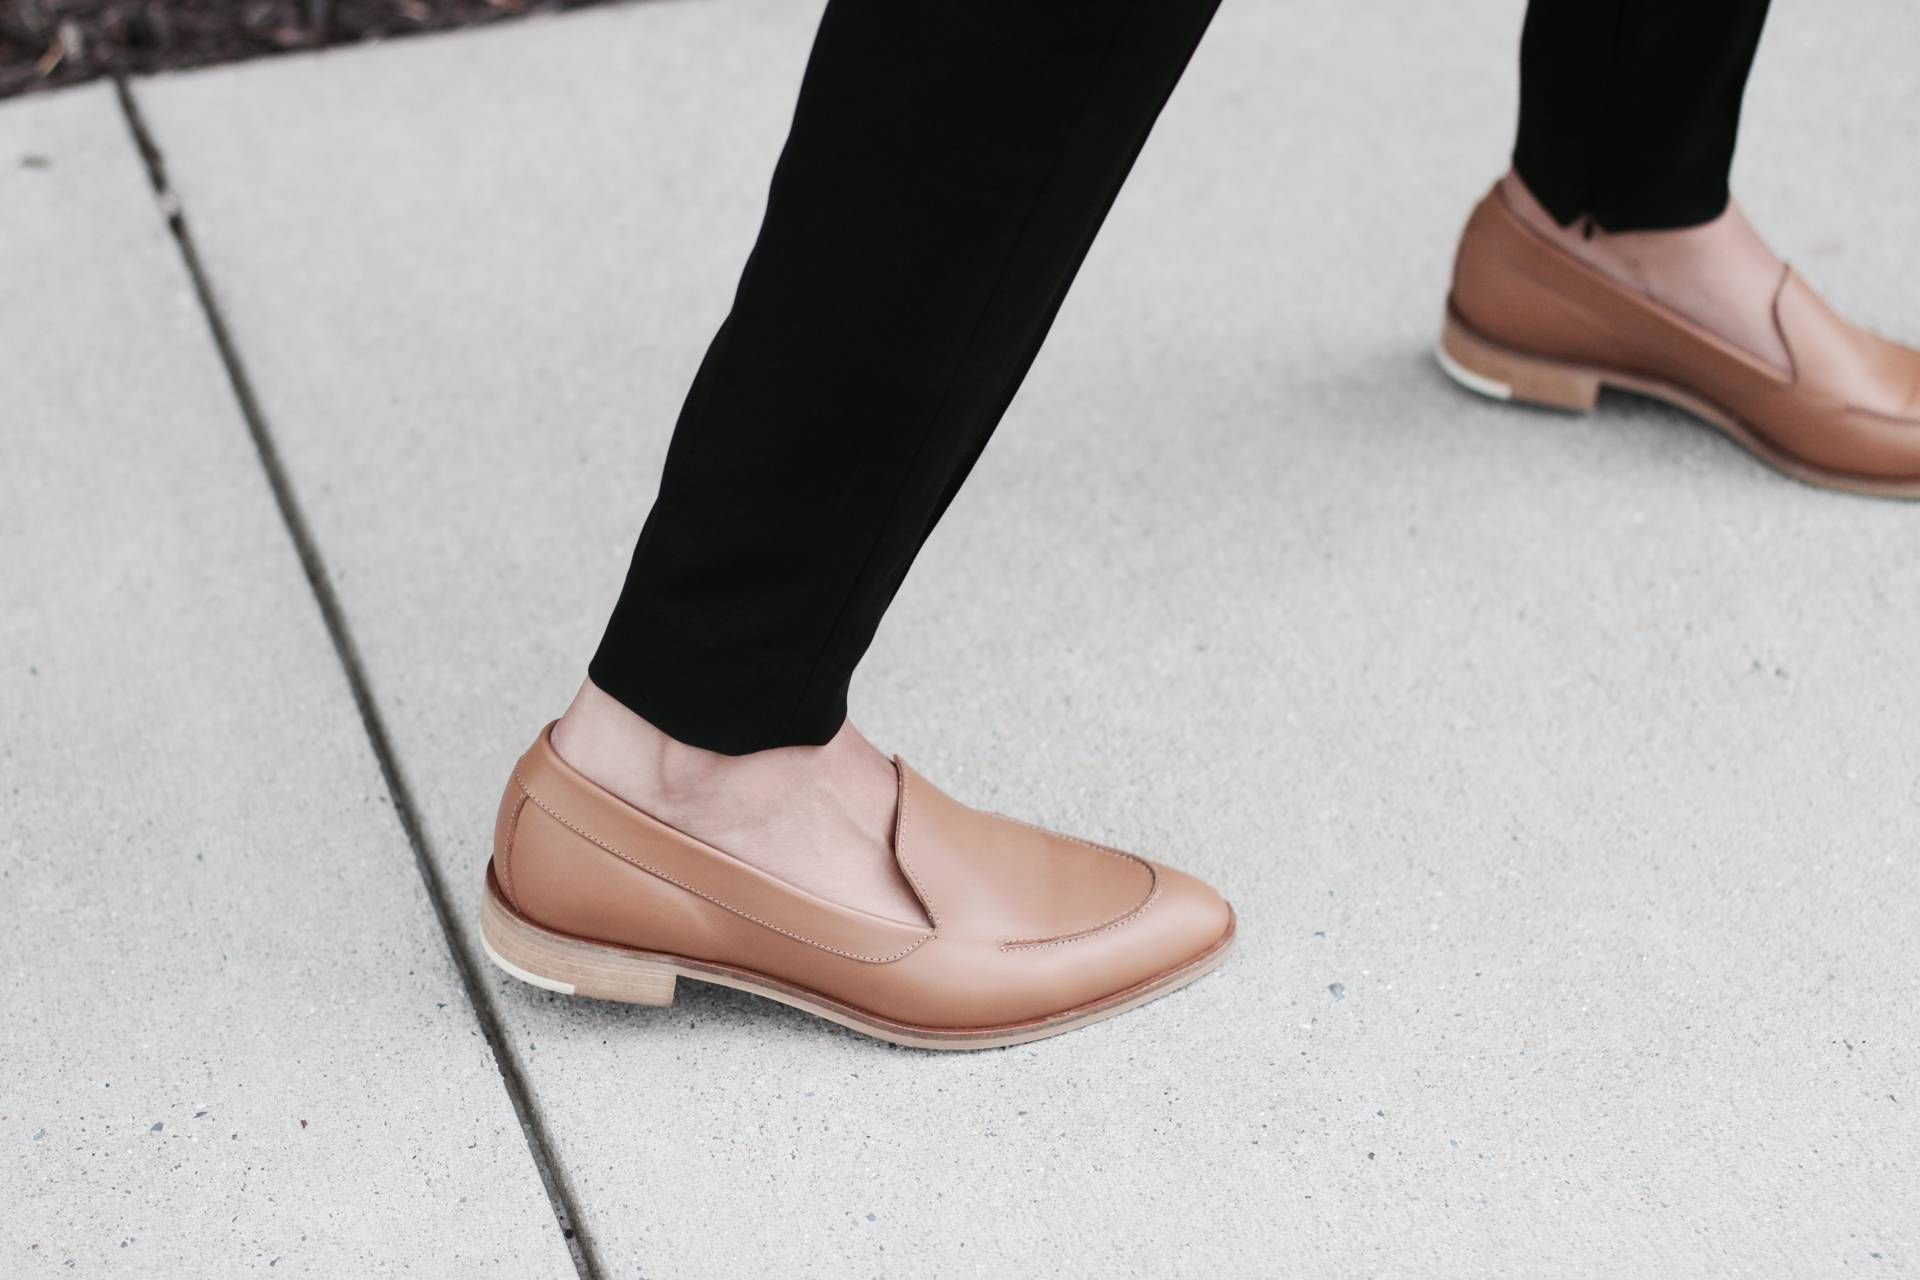 c5efb15324a Styling Loafers With Everlane